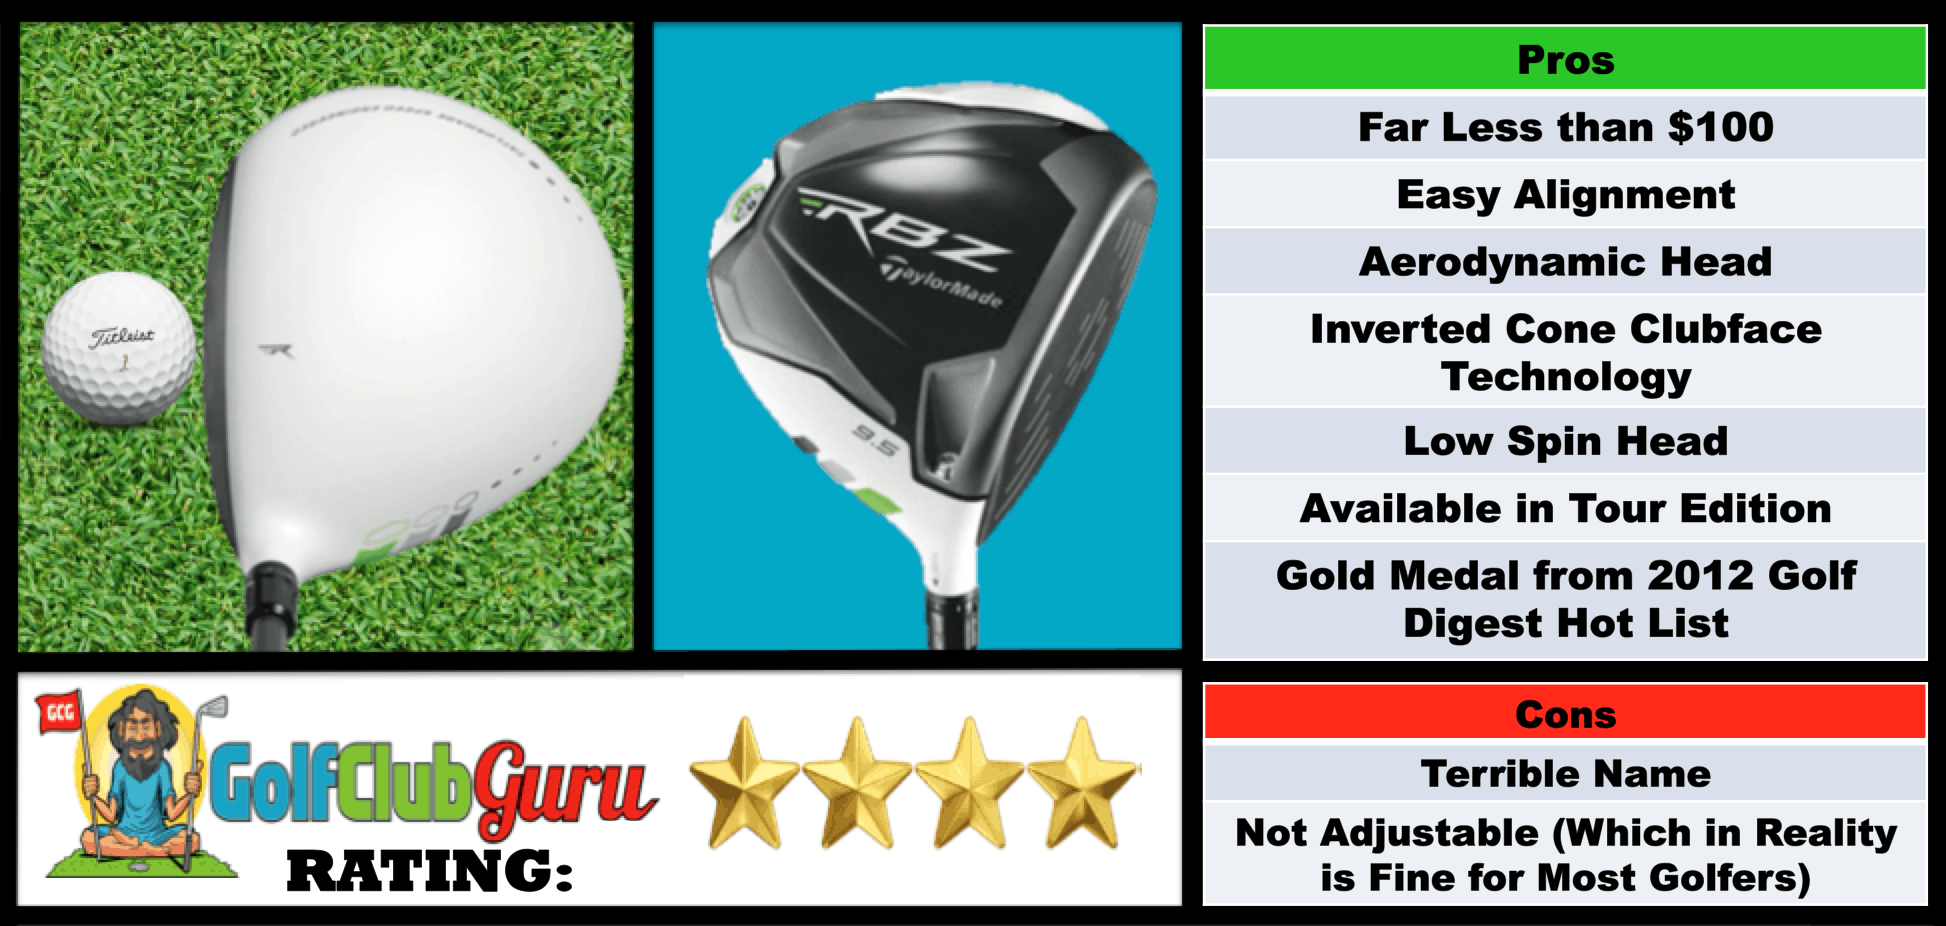 Photos, Review, Ranking, Pros, and Cons of TaylorMade RocketBallz Driver